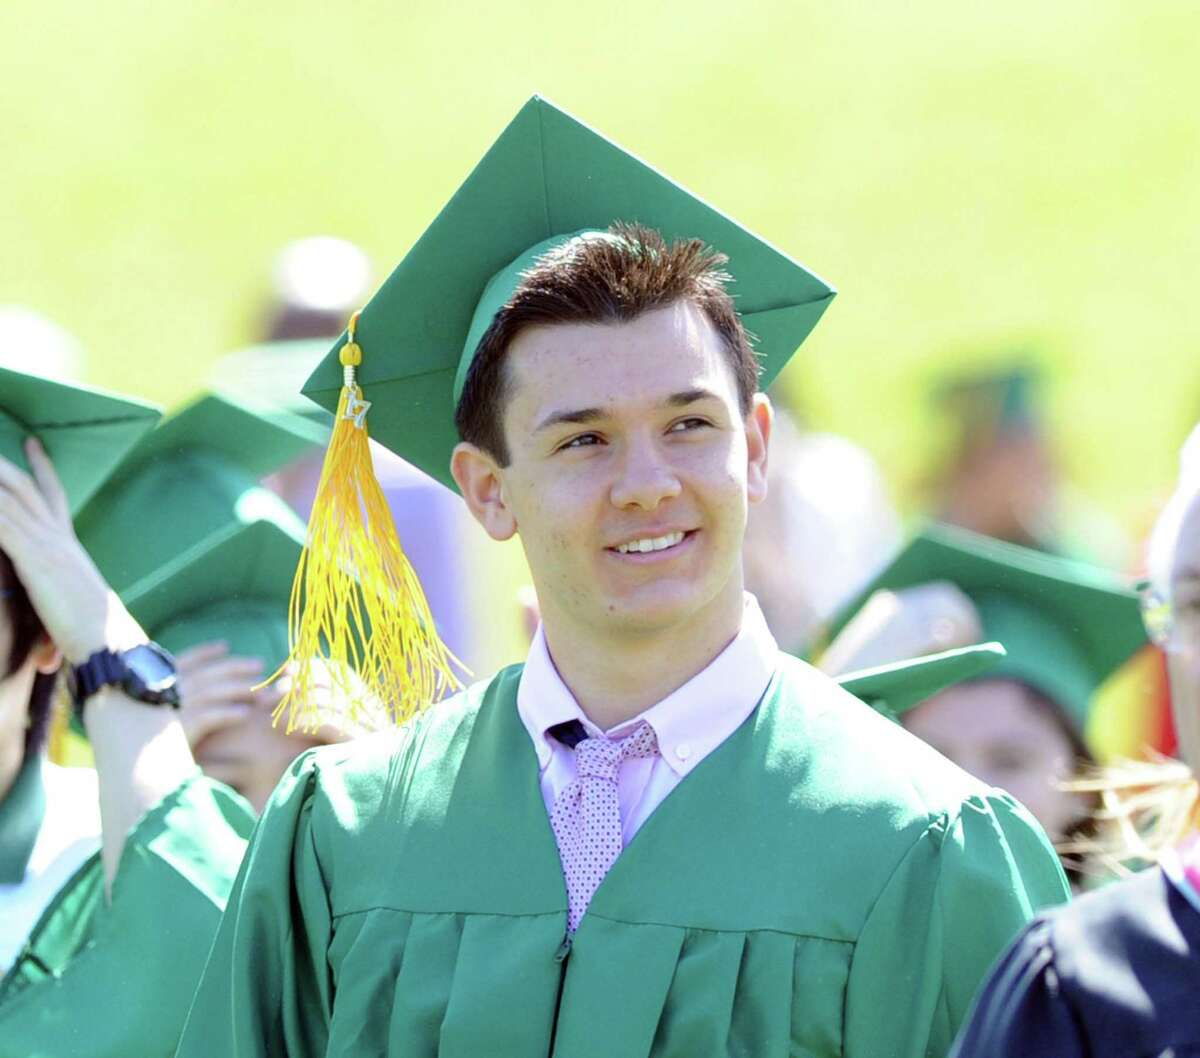 Frank Alfano, 18, of Greenwich, during his Trinity Catholic High School commencement at the school in Stamford, Conn., Saturday, June 3, 2017.